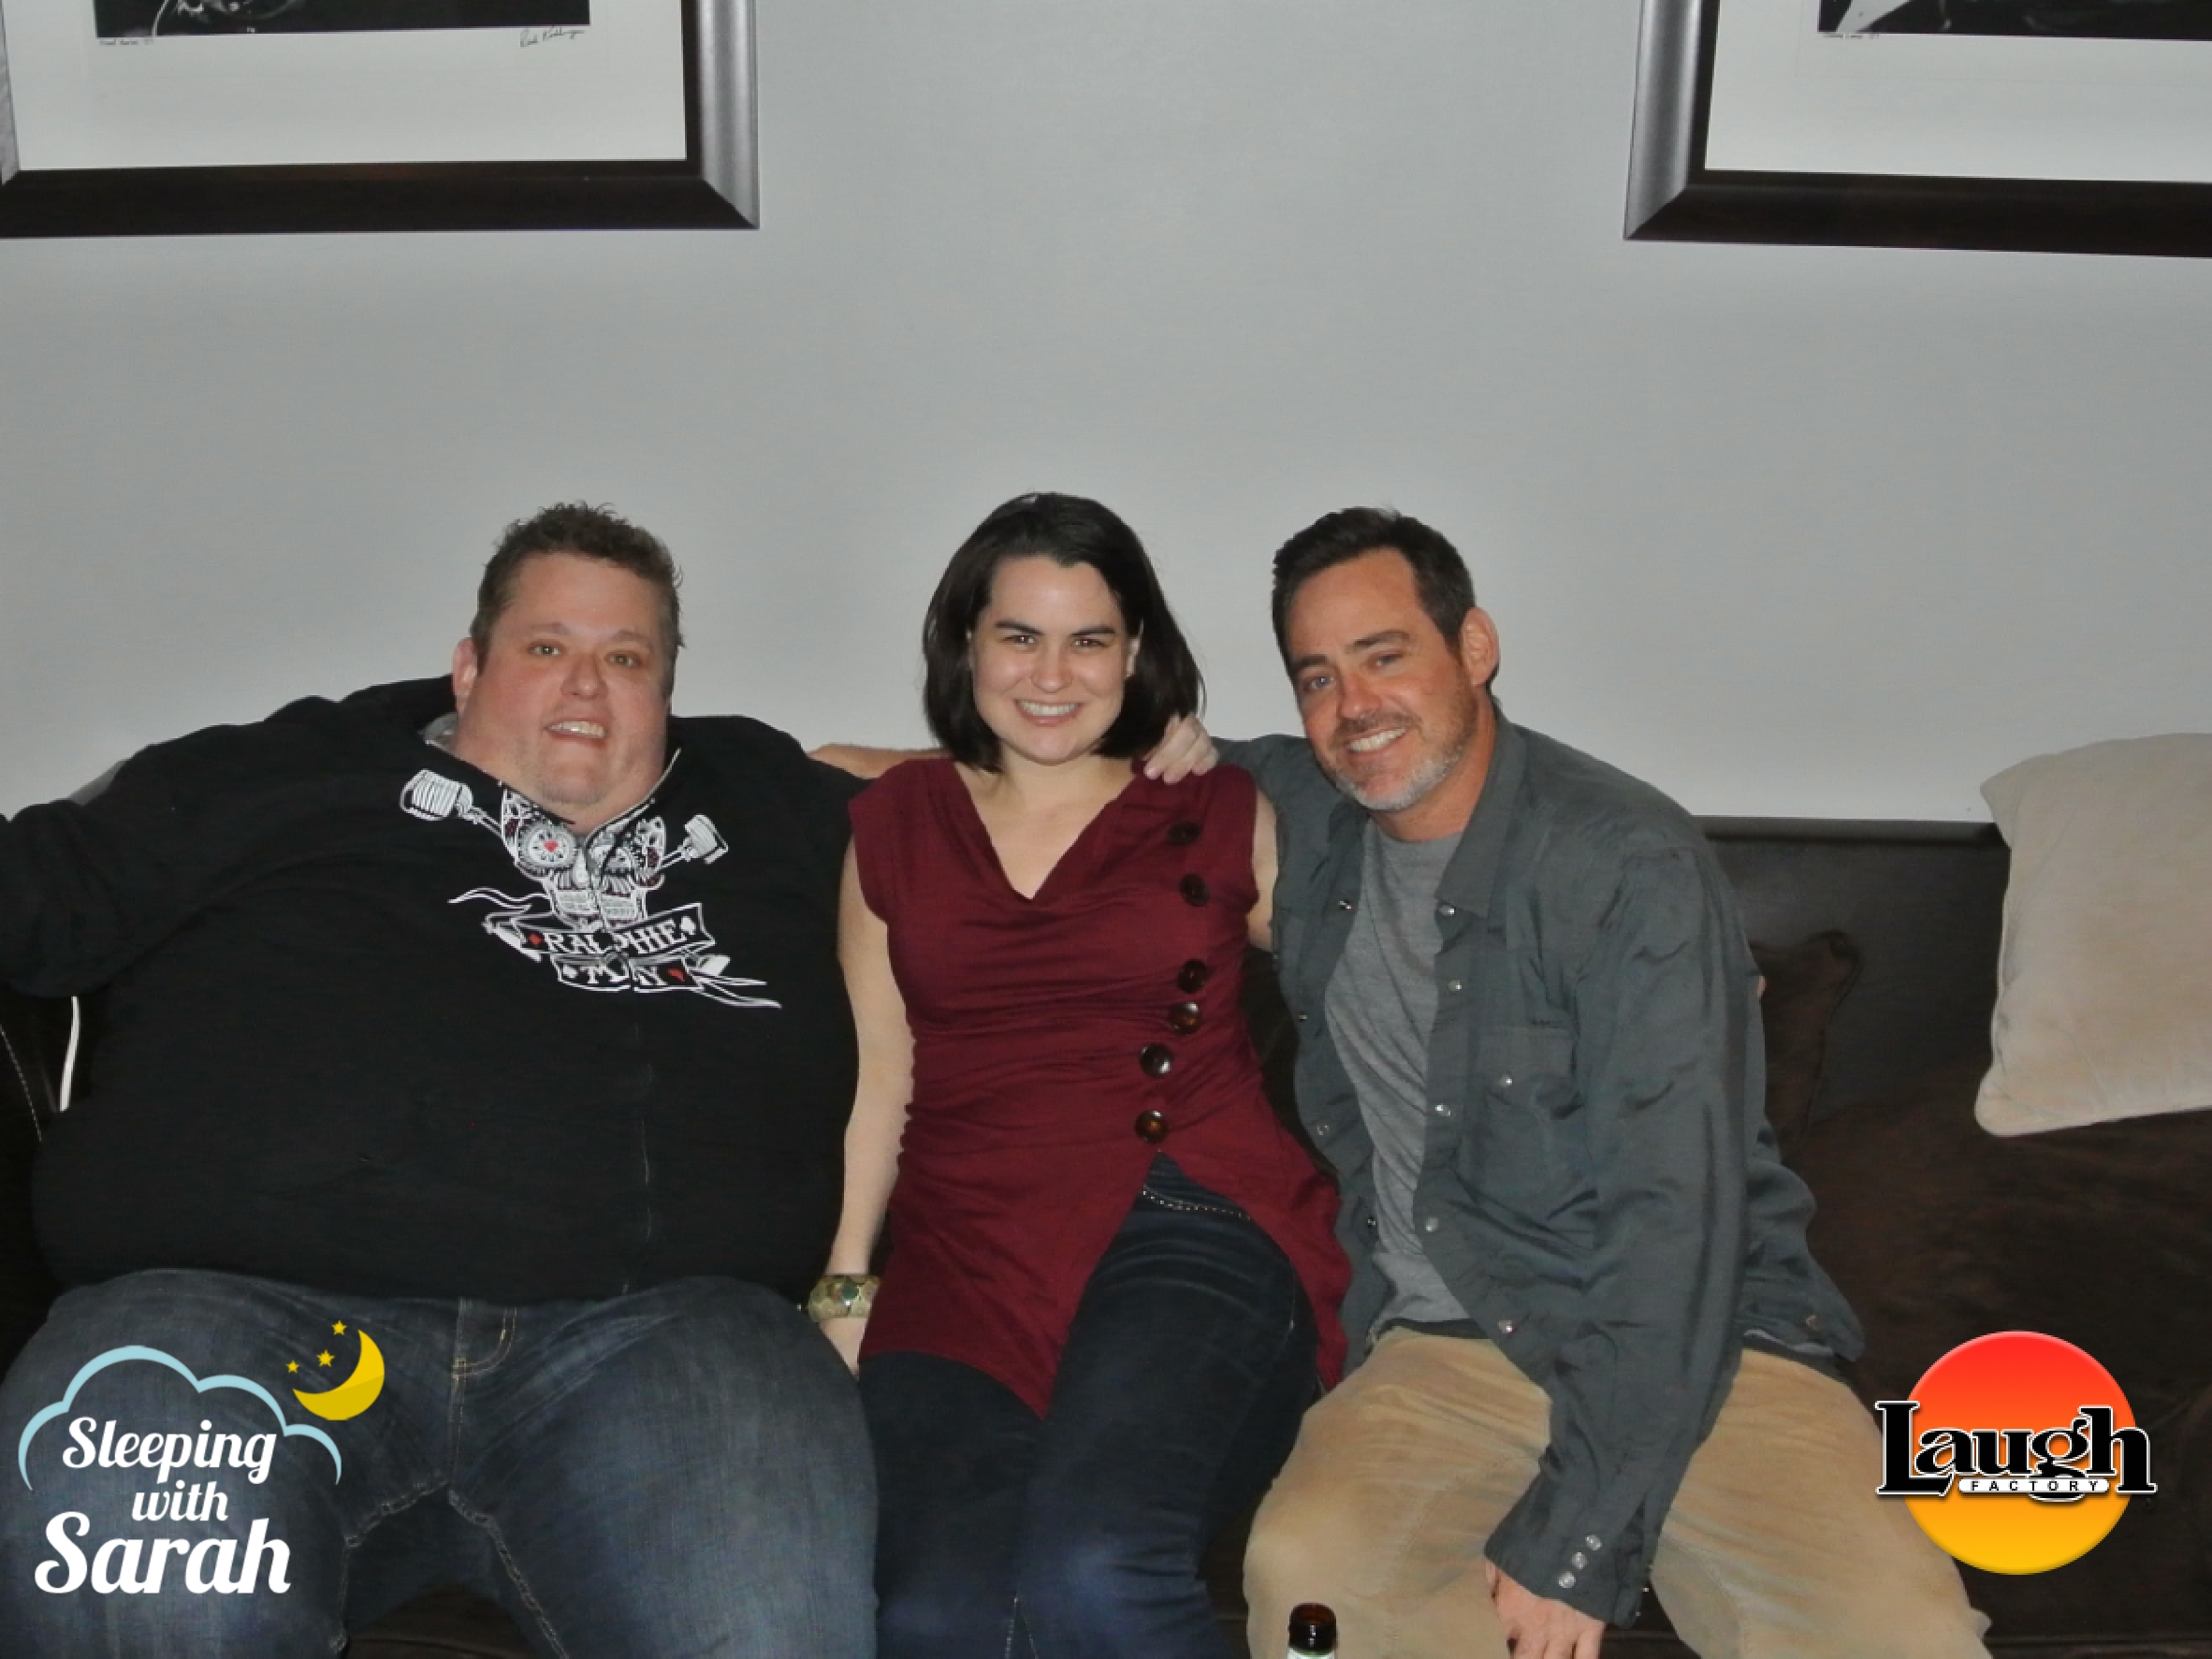 Ep 43: On Top of the Mountain with Ralphie May and Ricky Cruz